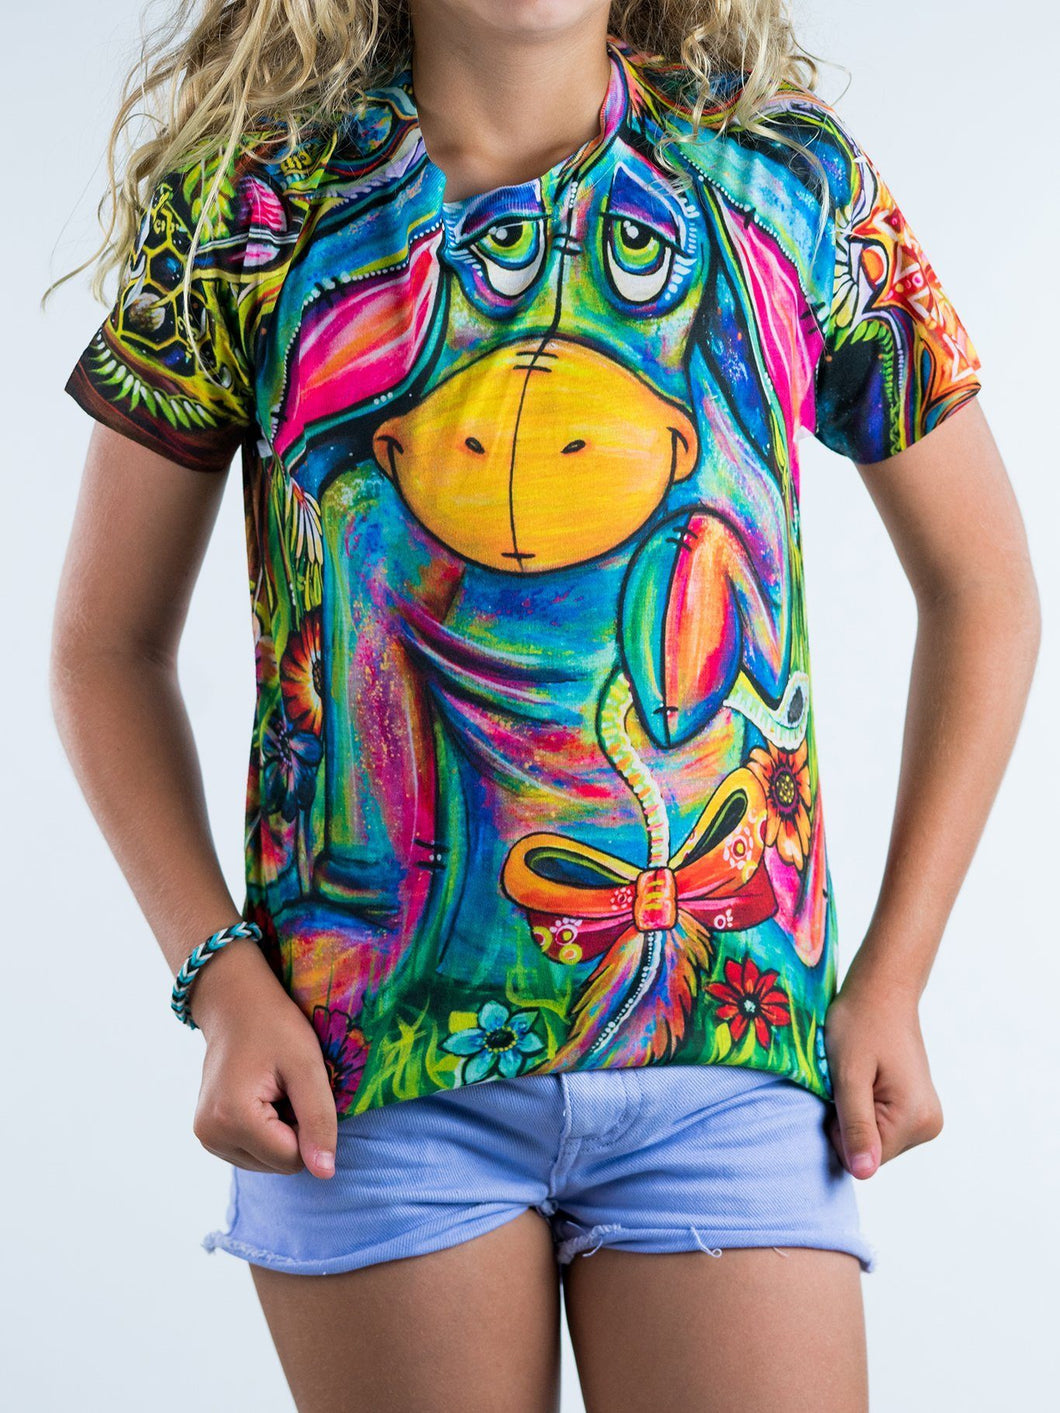 Colorful Donkey Design Kids Tee